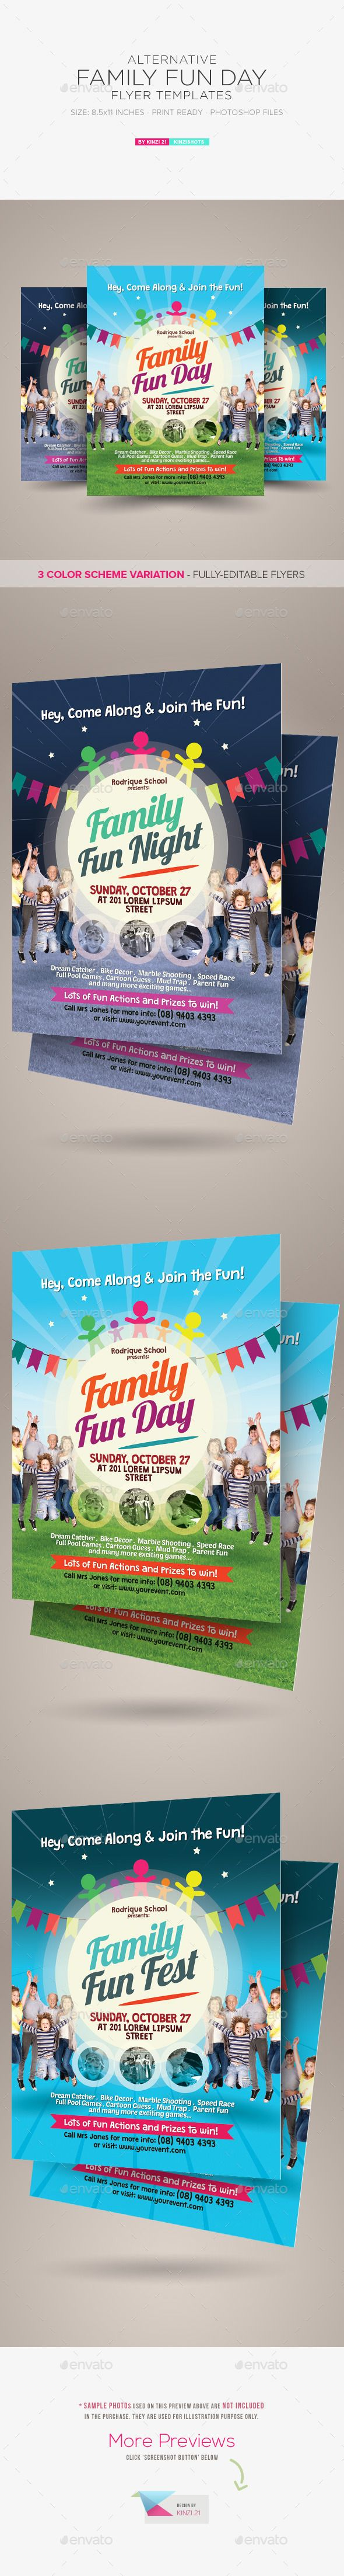 Alternative Family Fun Day Flyers Template PSD | Buy and Download: http://graphicriver.net/item/alternative-family-fun-day-flyers/9018258?WT.ac=category_thumb&WT.z_author=kinzishots&ref=ksioks